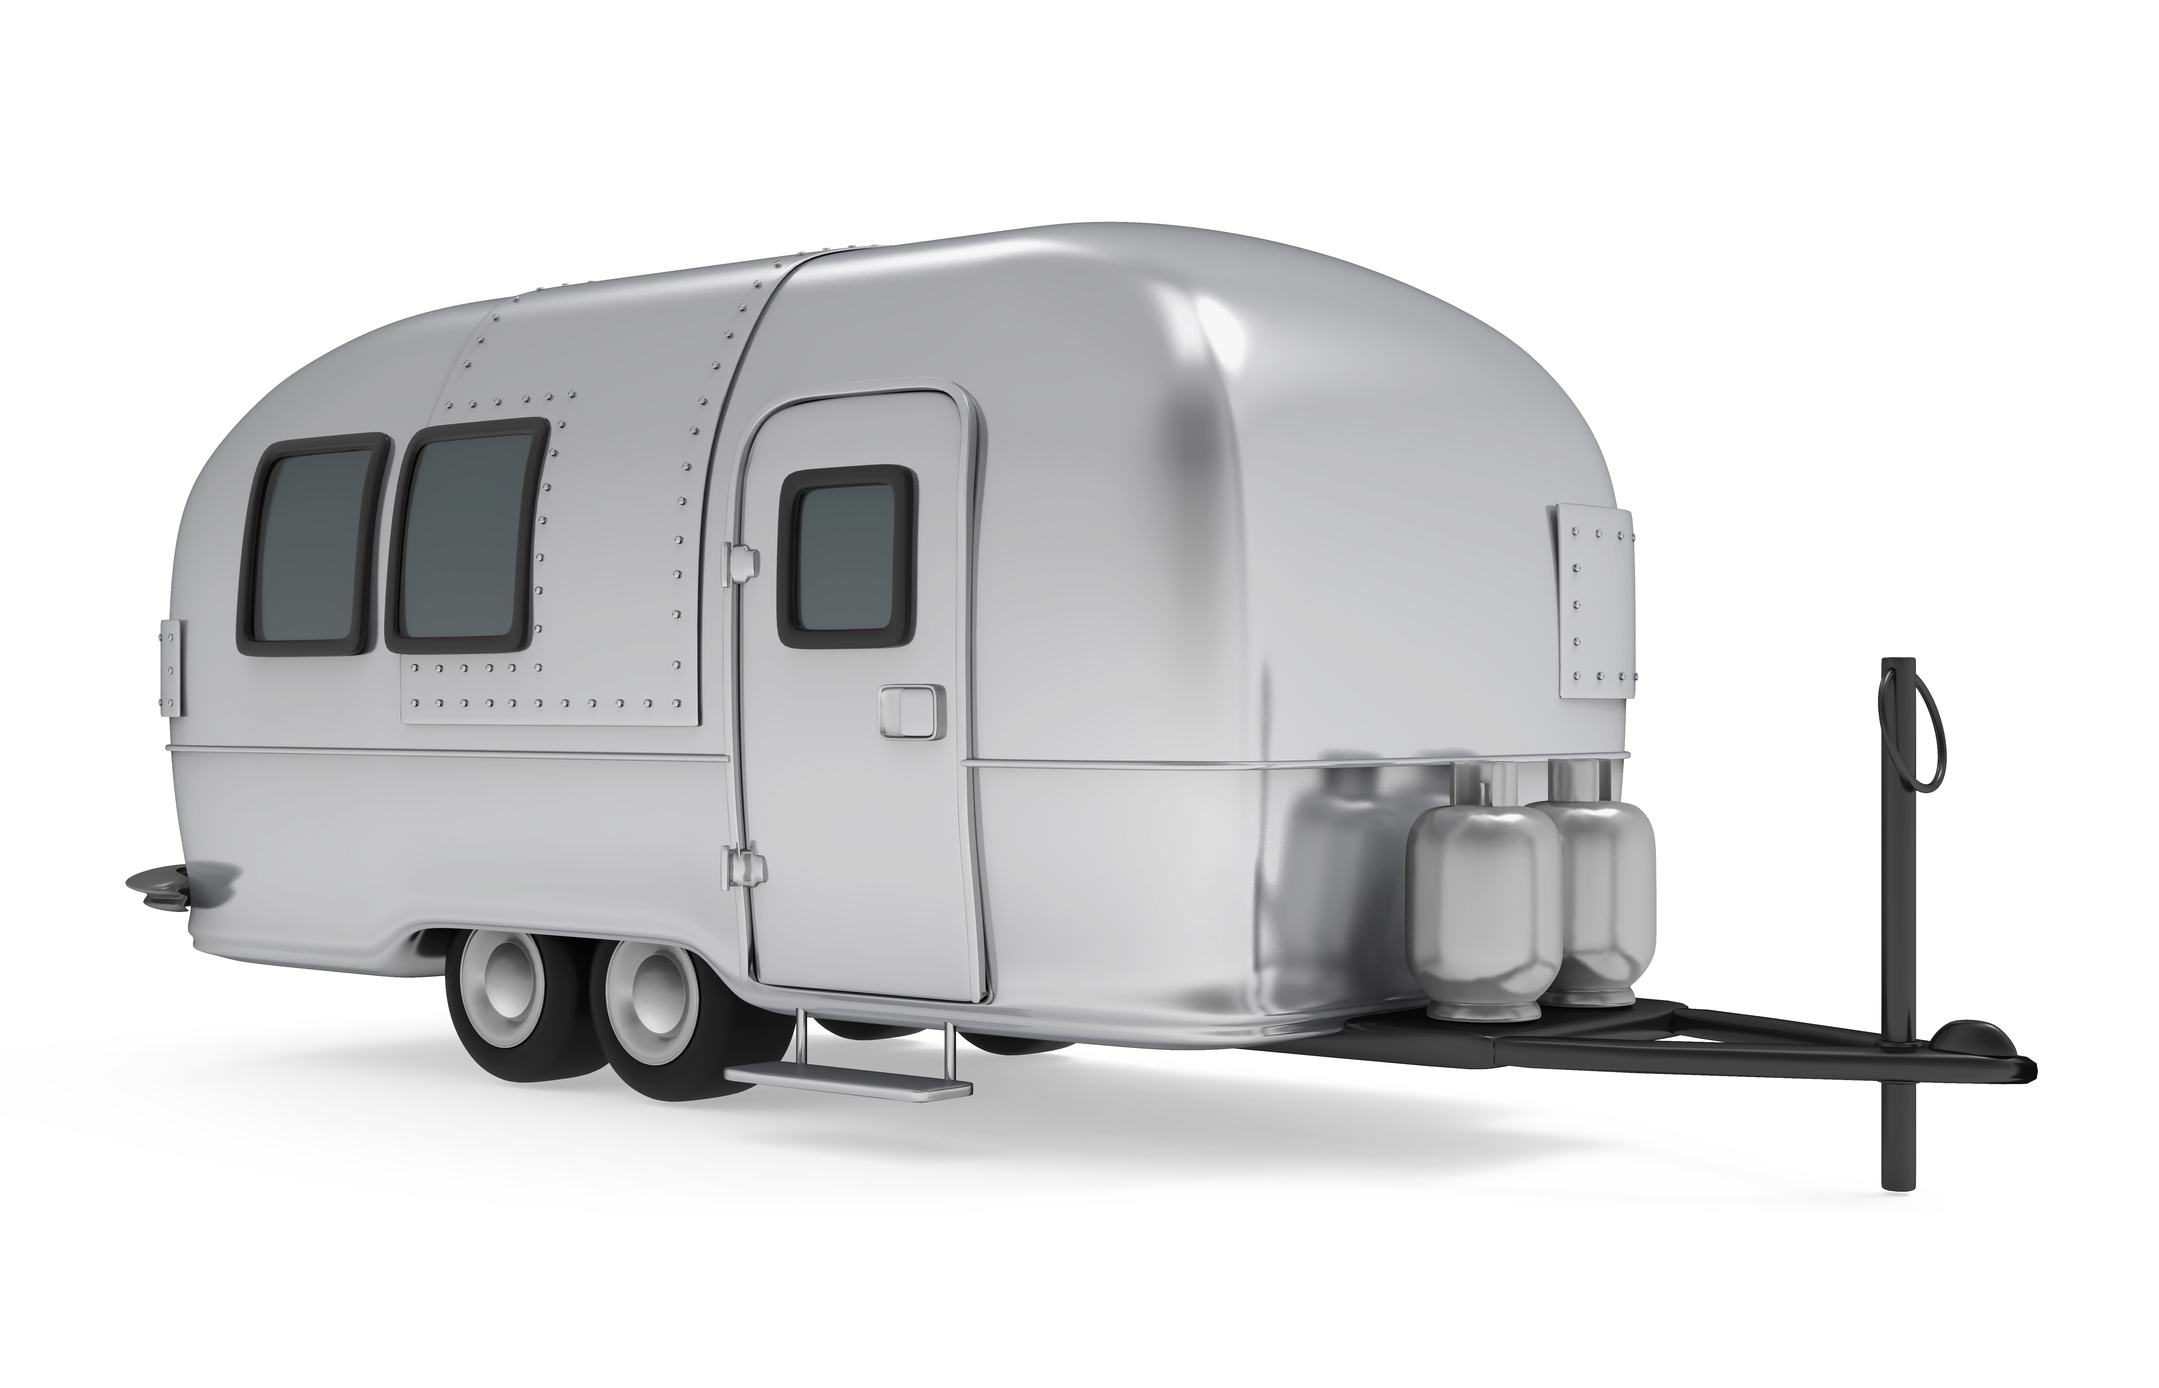 Small model of an airstream trailer.